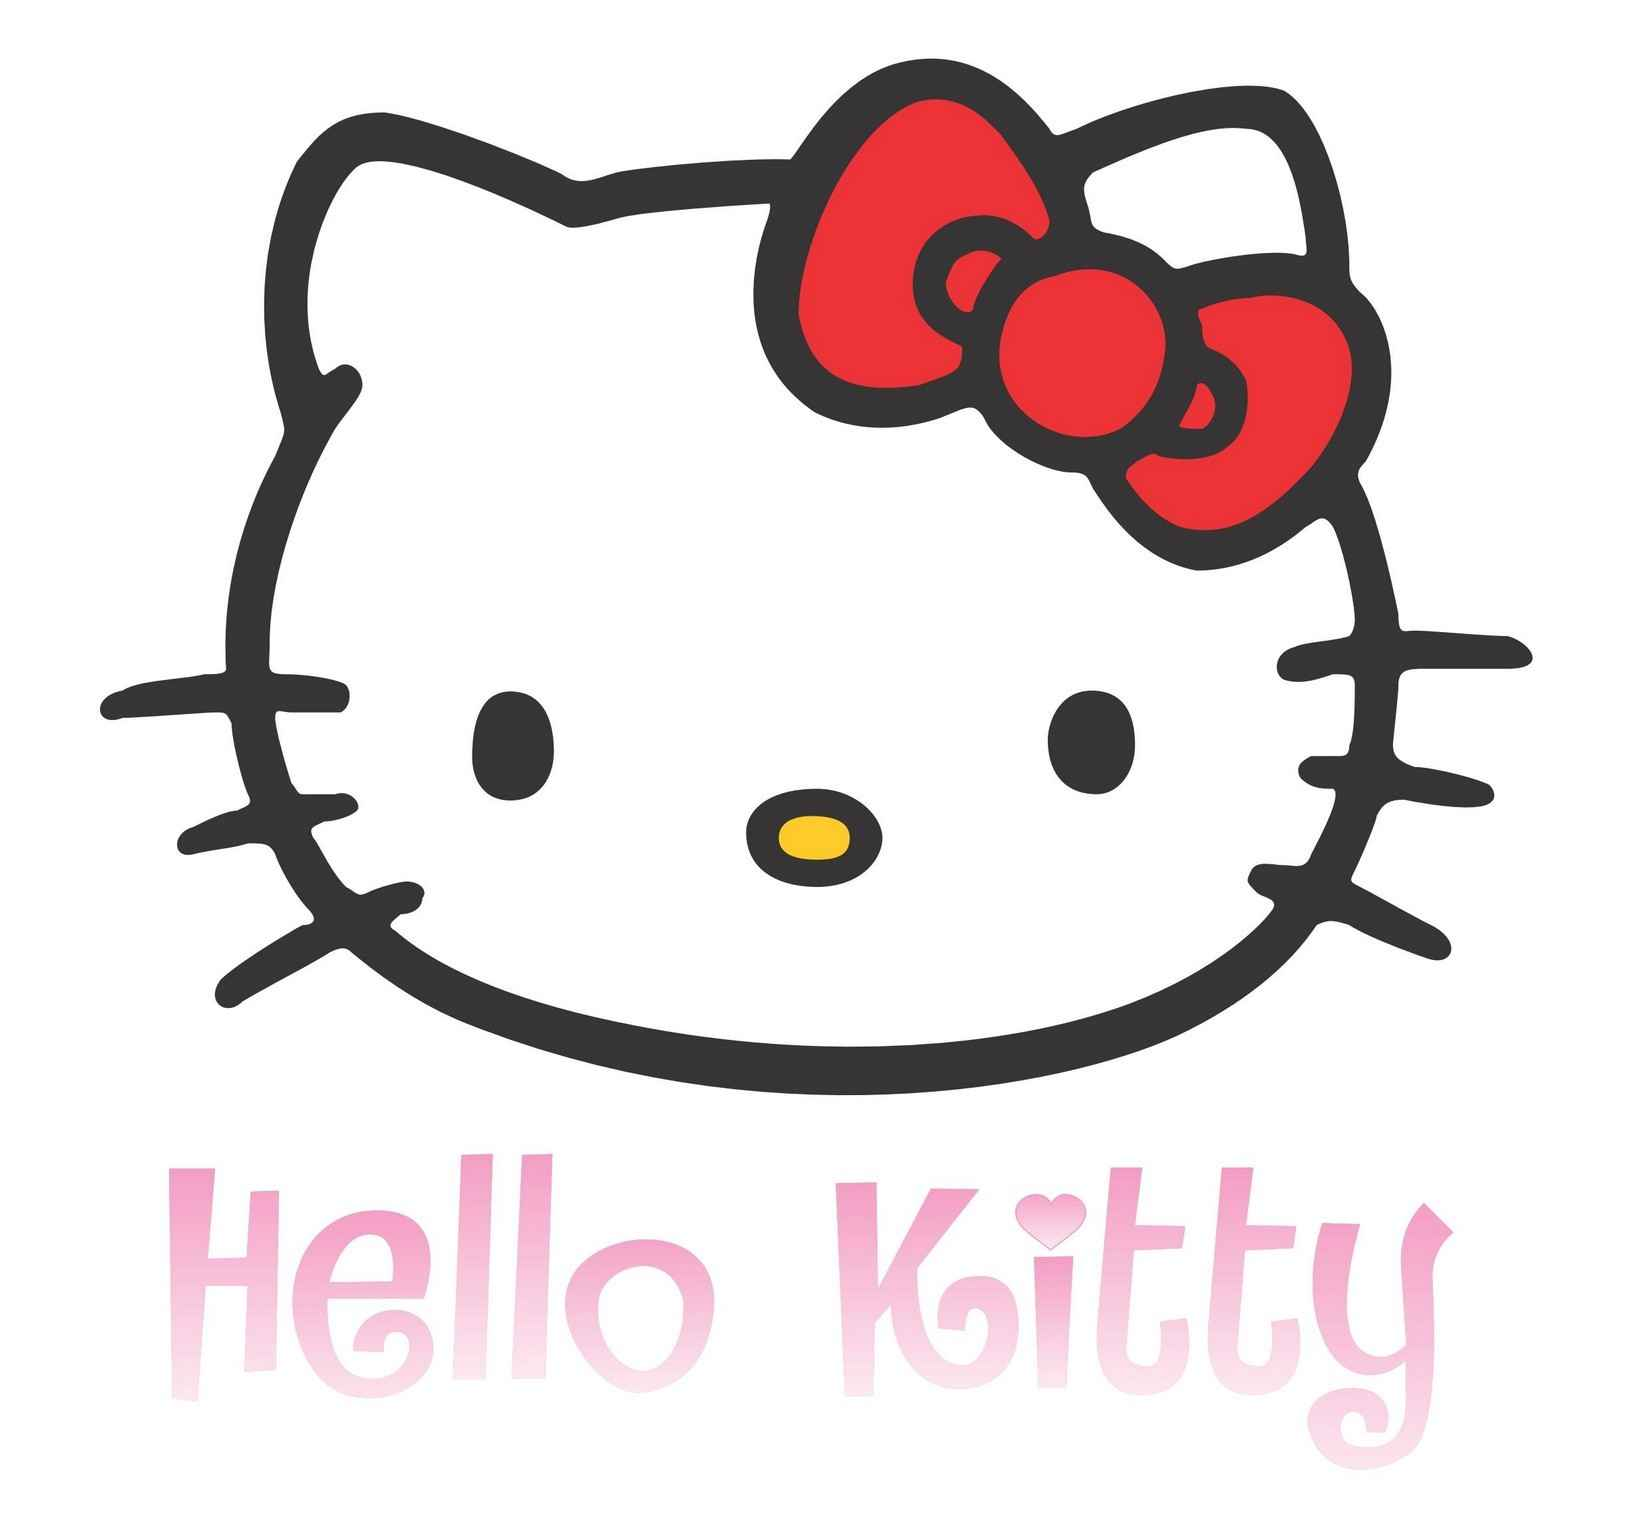 Hello Kitty Logo [EPS File]